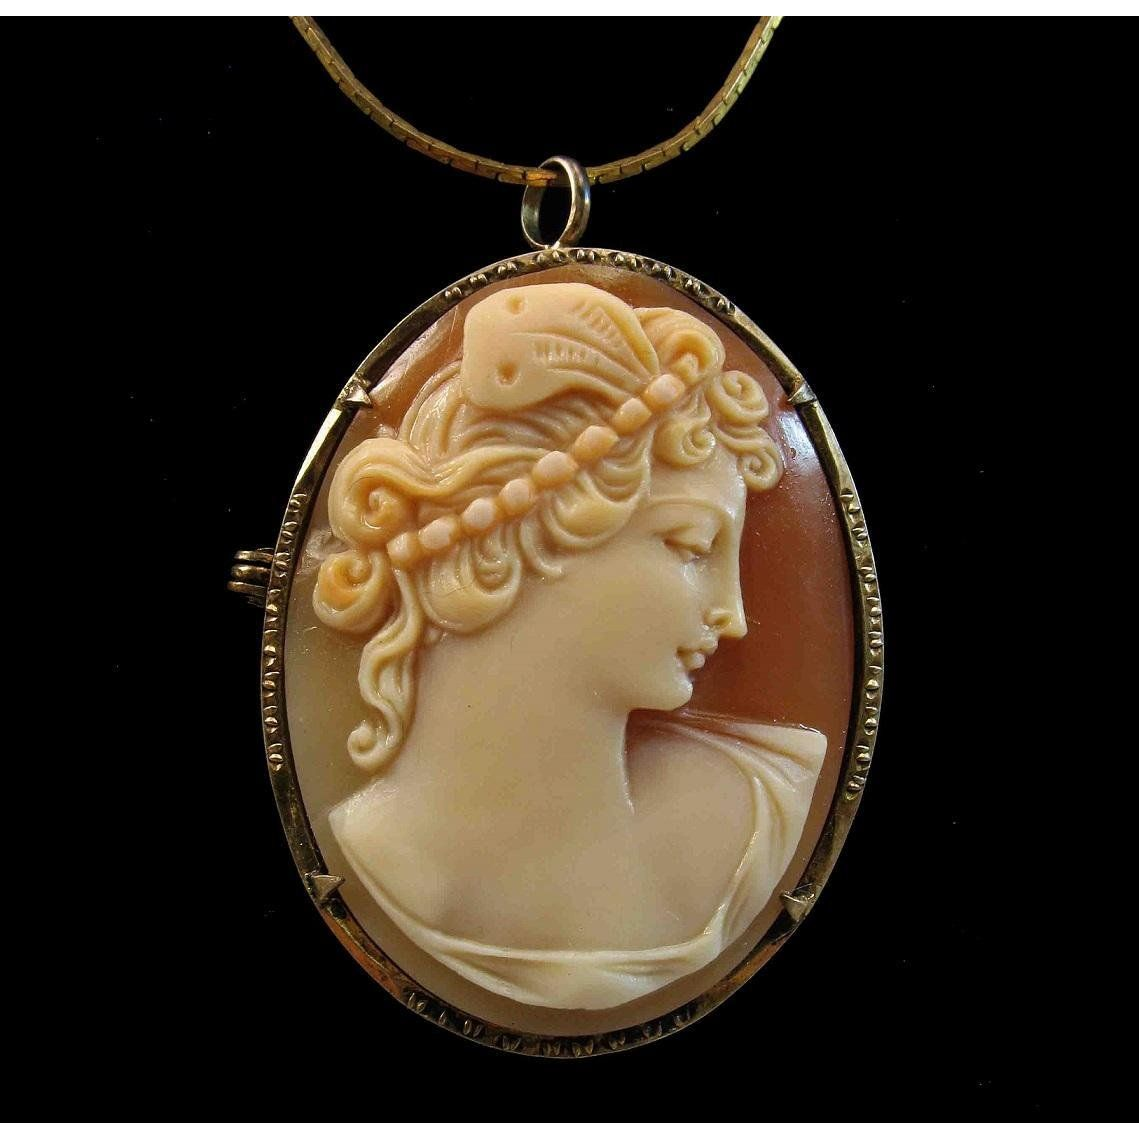 9ffb8d5f867f4 Psyche Bride of Cupid Shell Cameo 800 Silver Gilt Brooch Pendant in ...